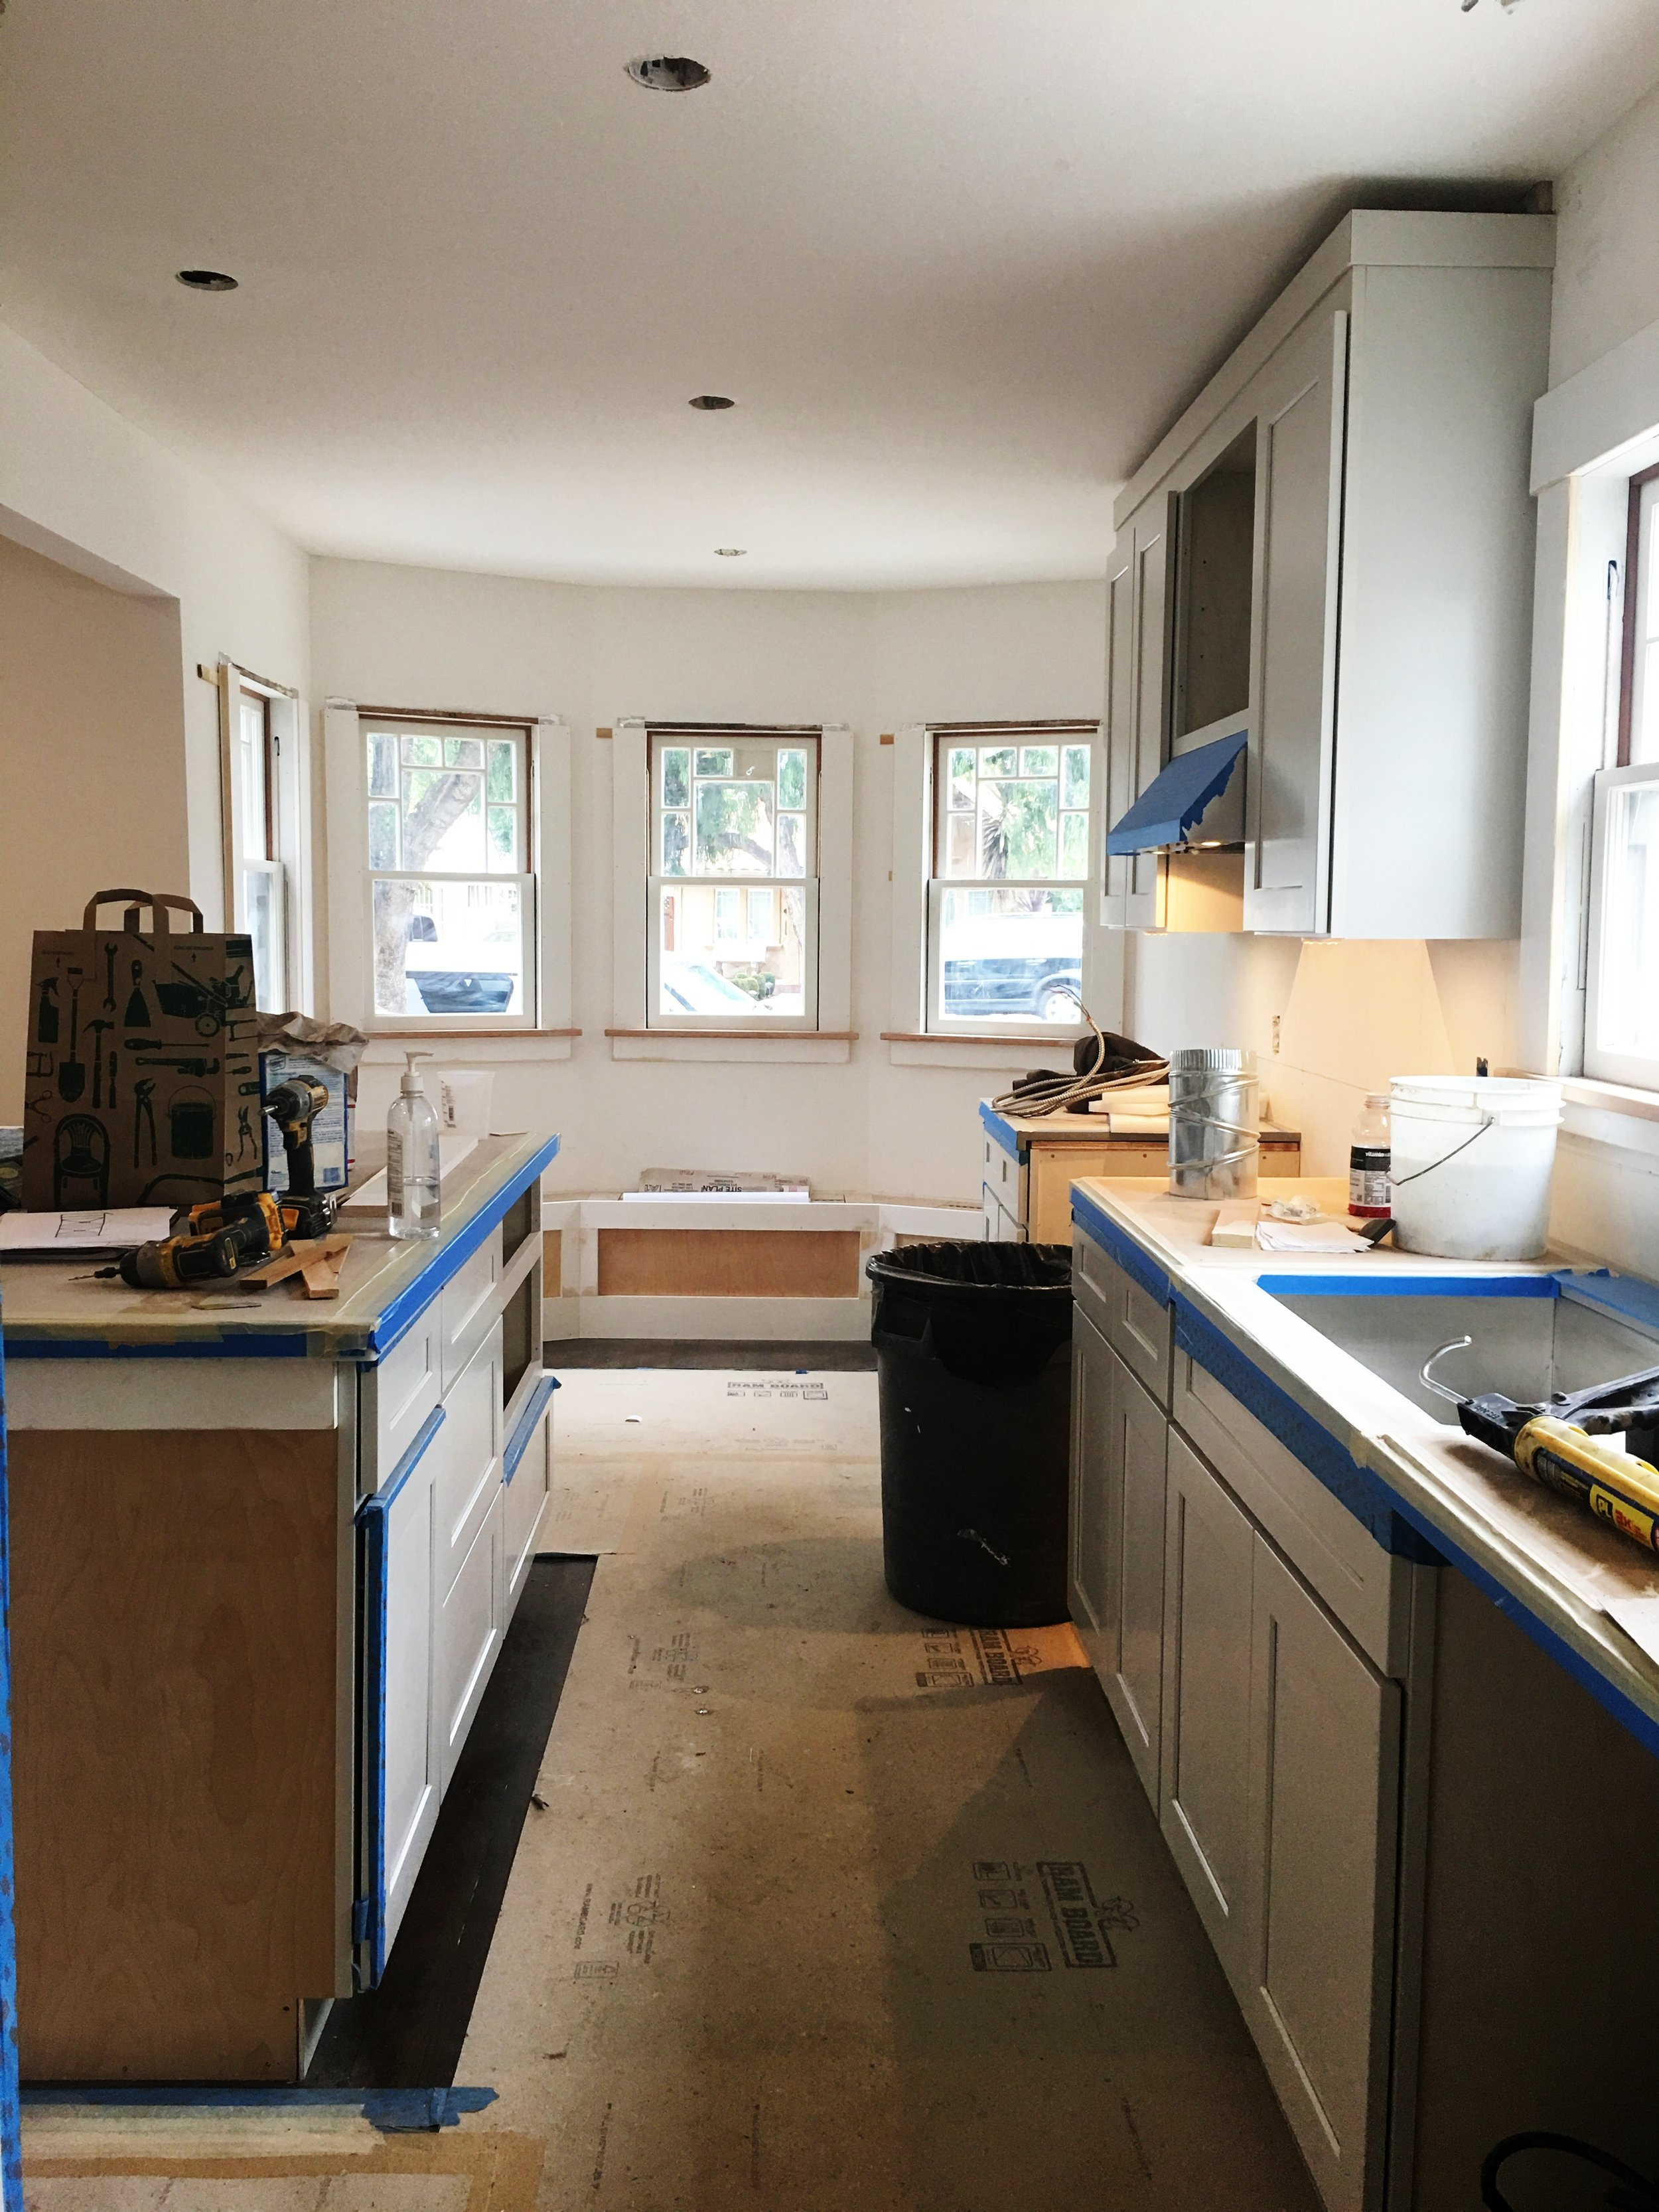 You can't imagine the light that poured into this room when all the plywood finally came down. It's a little bit of a tease because under this cardboard is honed marble, gray granite and beautiful refinished, stained hardwood floors (Douglas Fir in here).